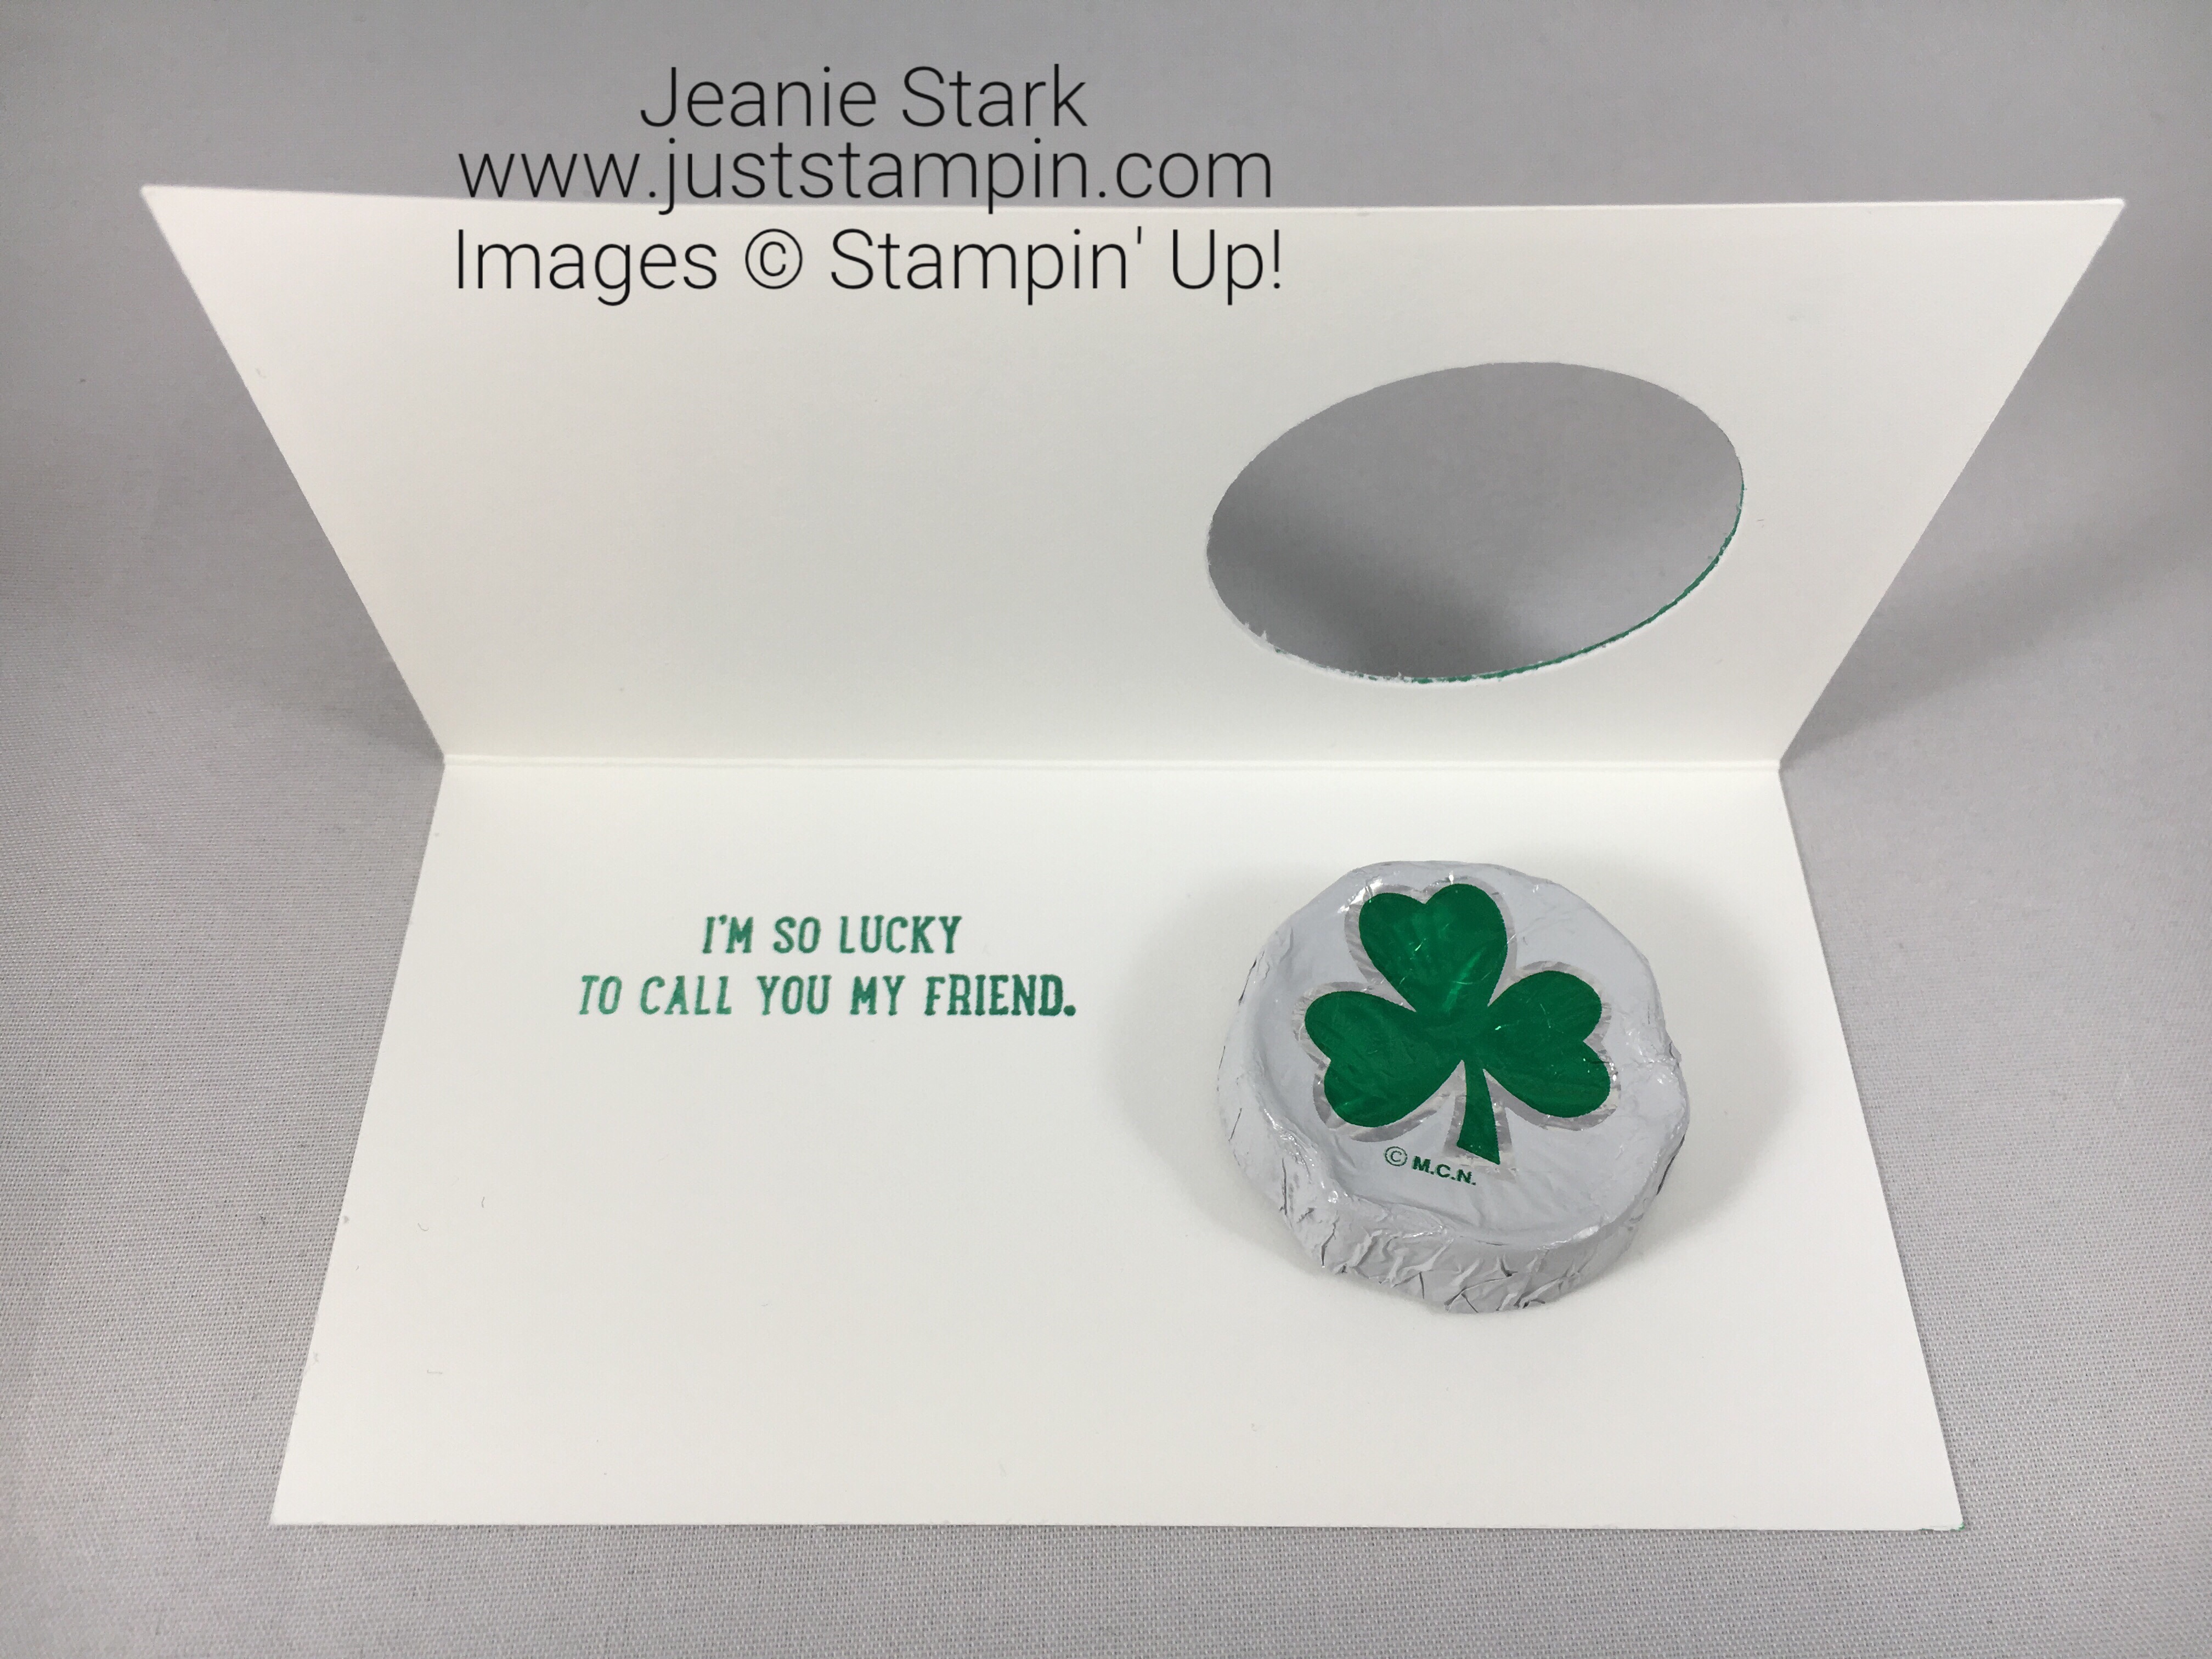 Stampin Up Sprinkles of Life St. Patrick's Day card idea using Narrow Note Card - Jeanie Stark StampinUp